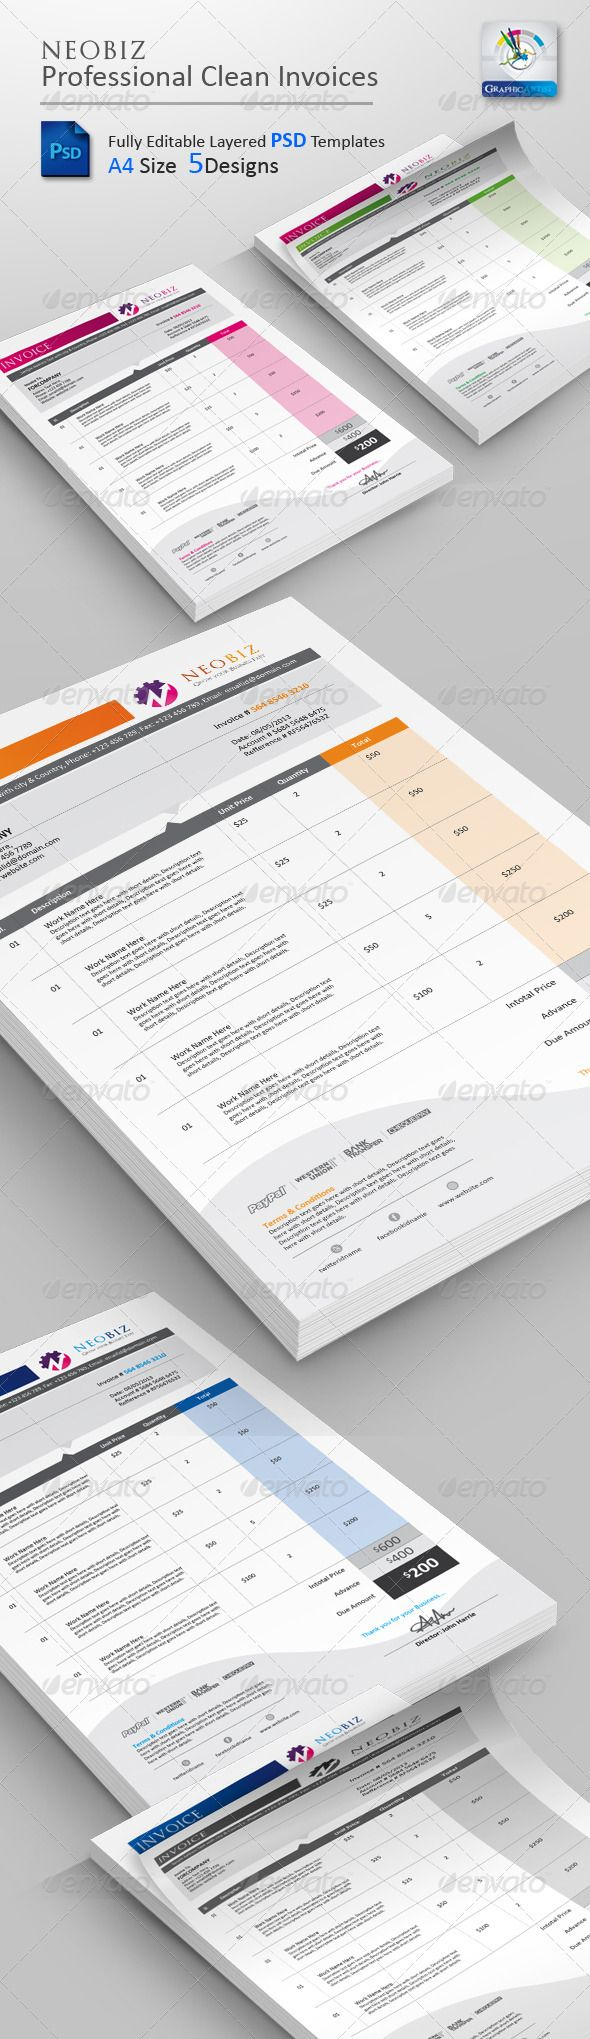 neobiz clean invoice psd templates | fonts, timeline and texts, Invoice examples